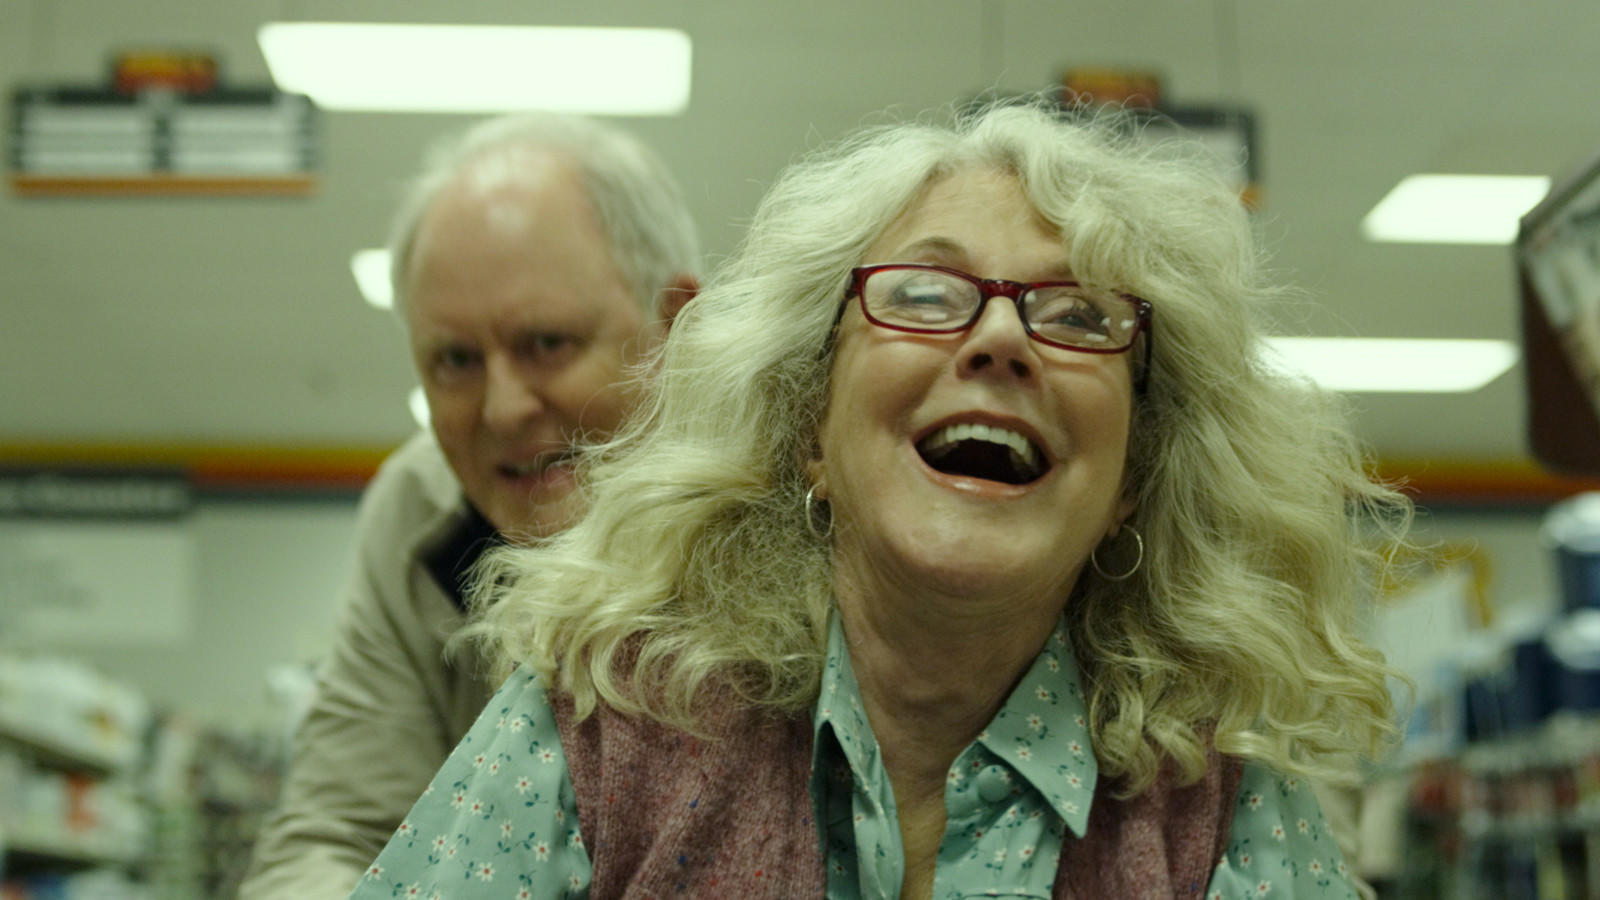 Review: Blythe Danner and John Lithgow make an offbeat pair in 'The Tomorrow Man'